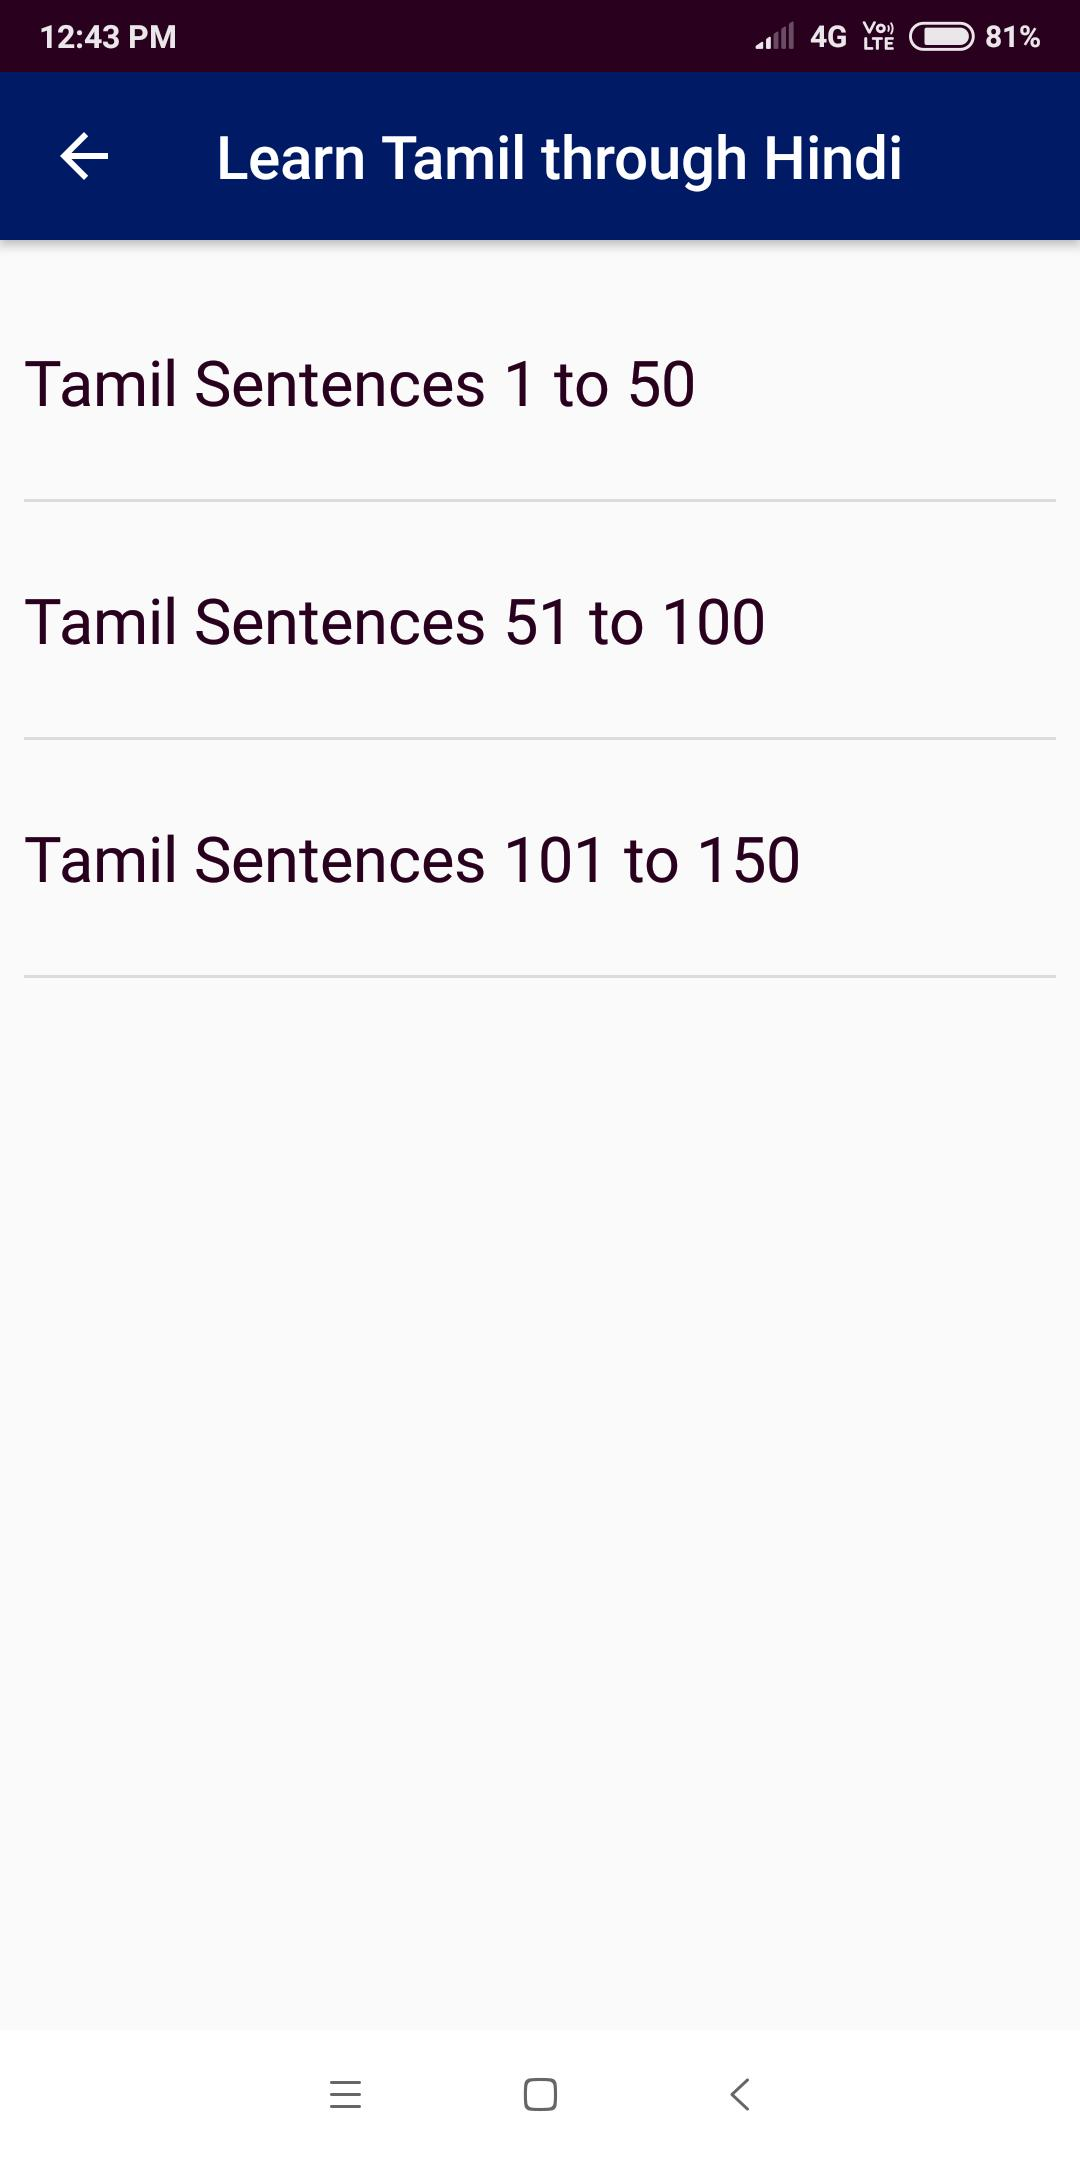 Learn Tamil through Hindi for Android - APK Download